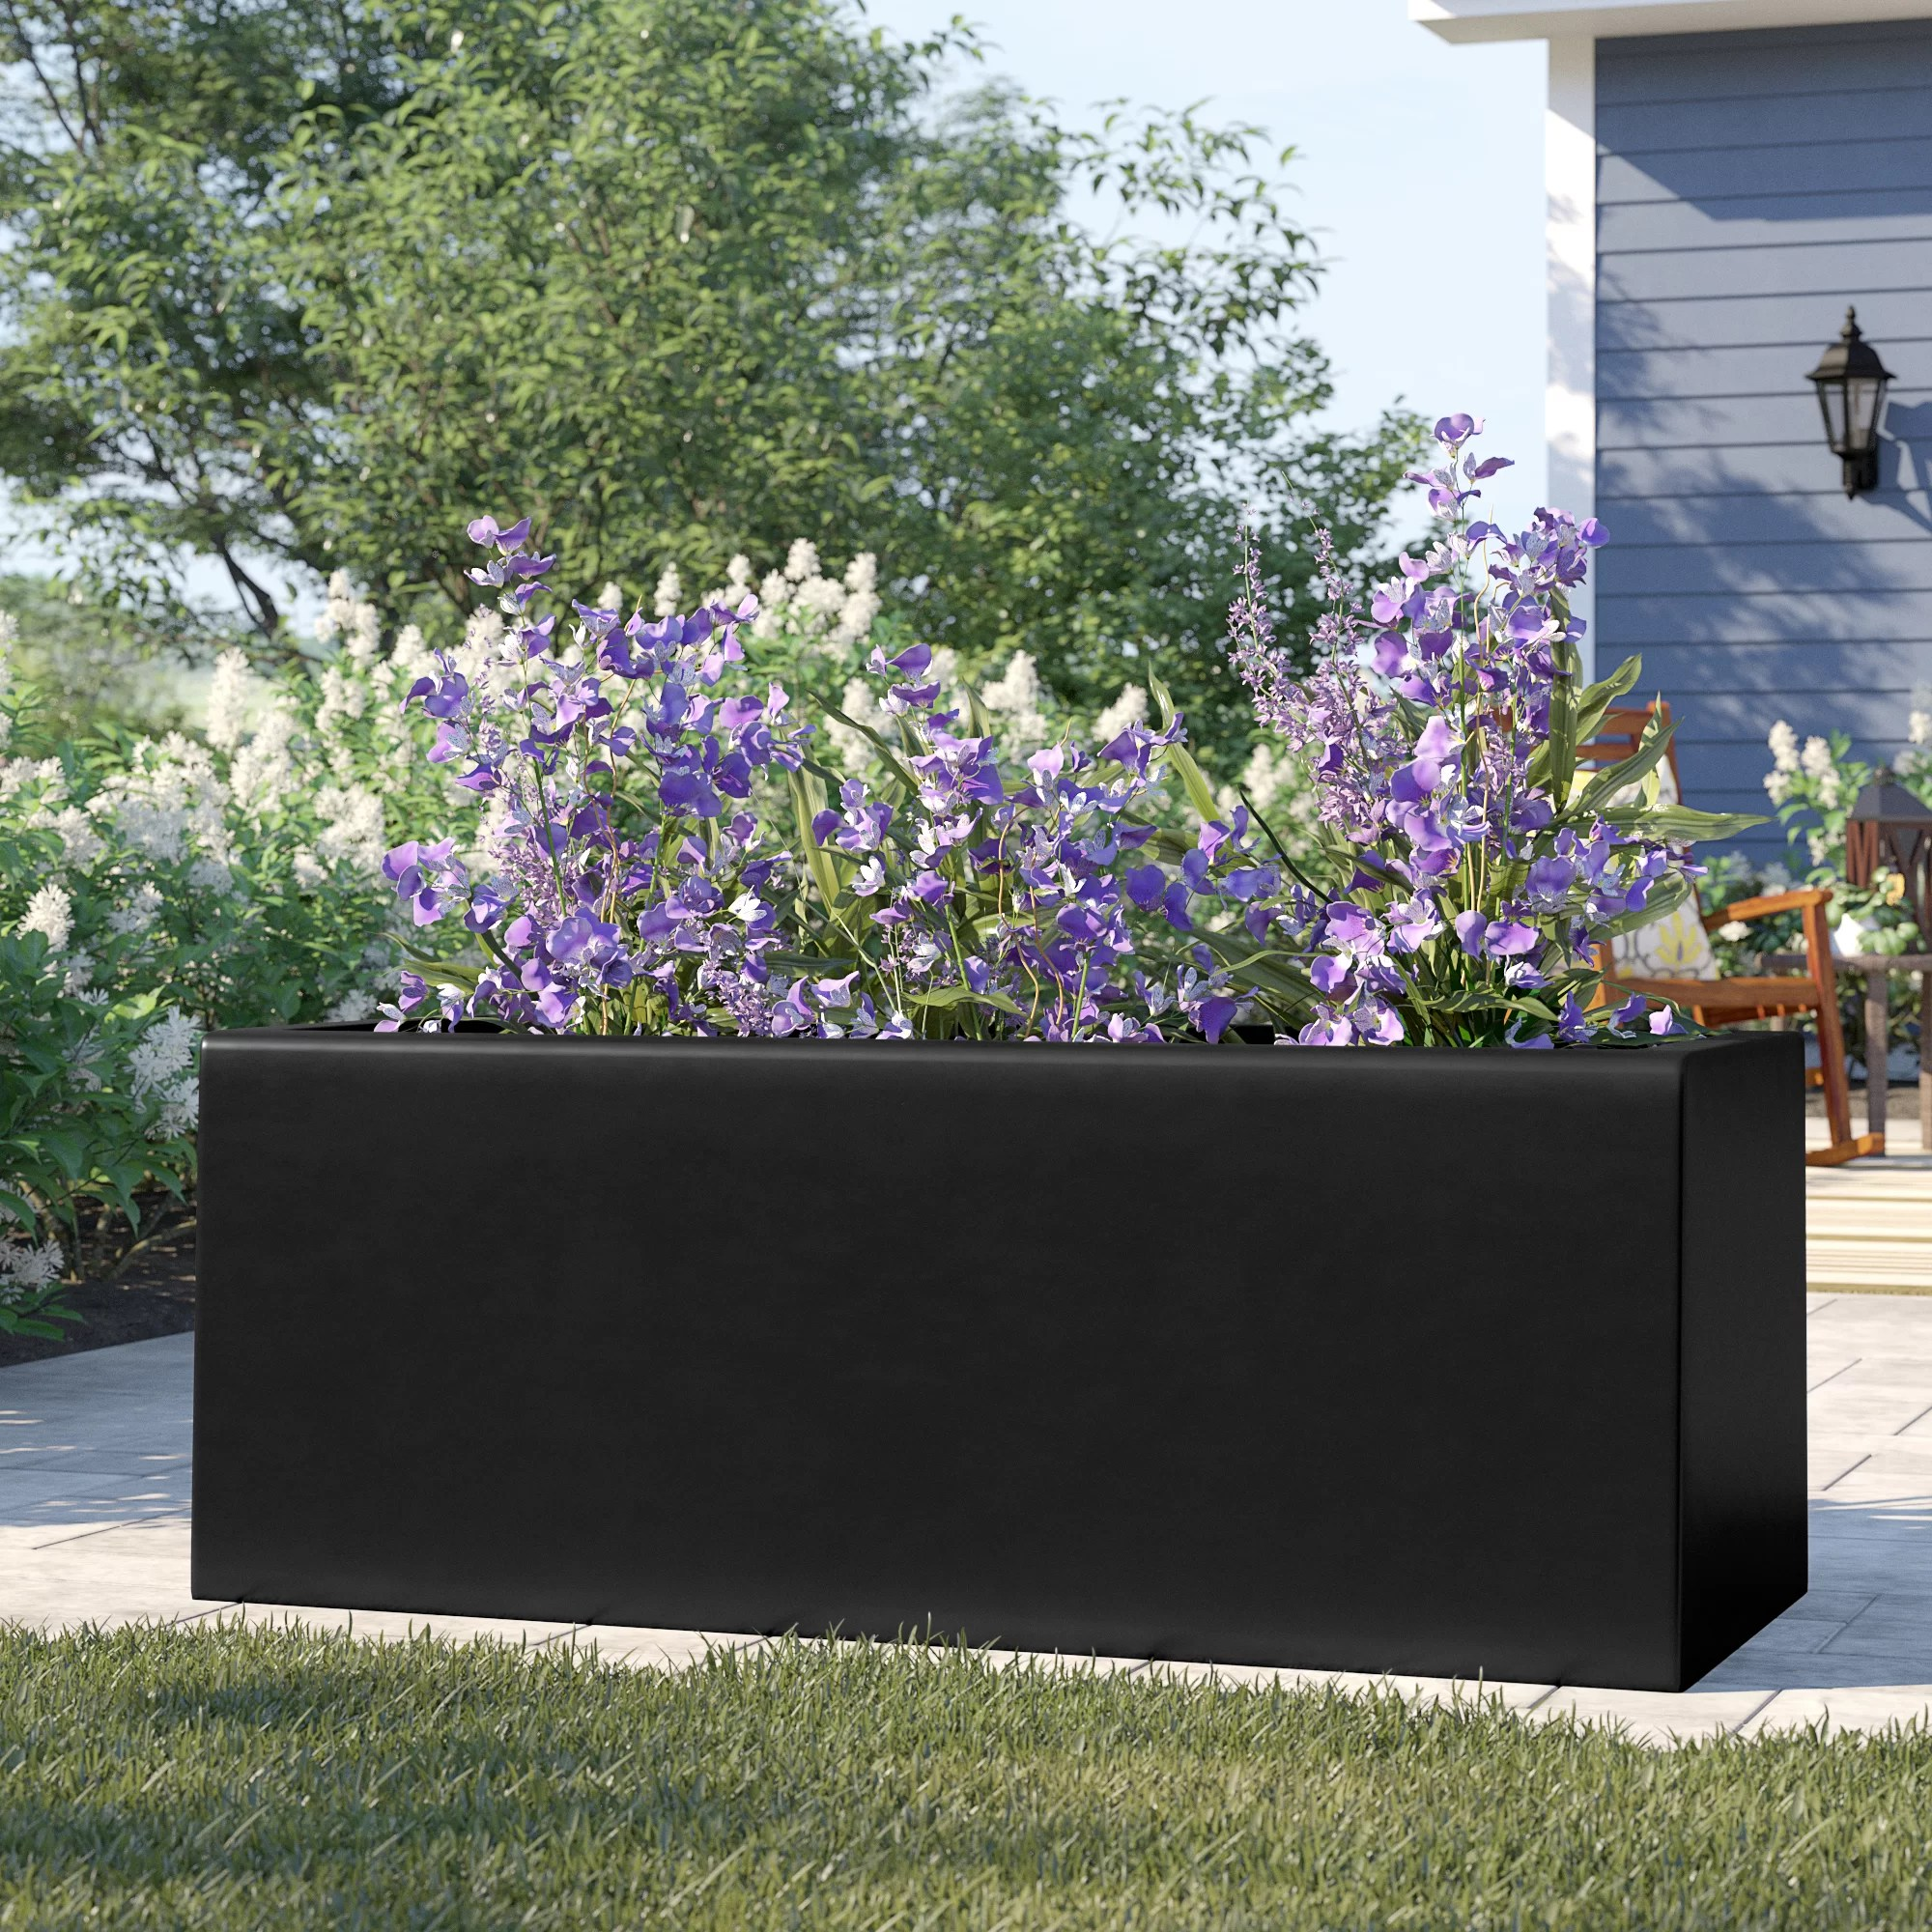 Planter For Herbs Barclay Rectangle Fiberglass Planter Box